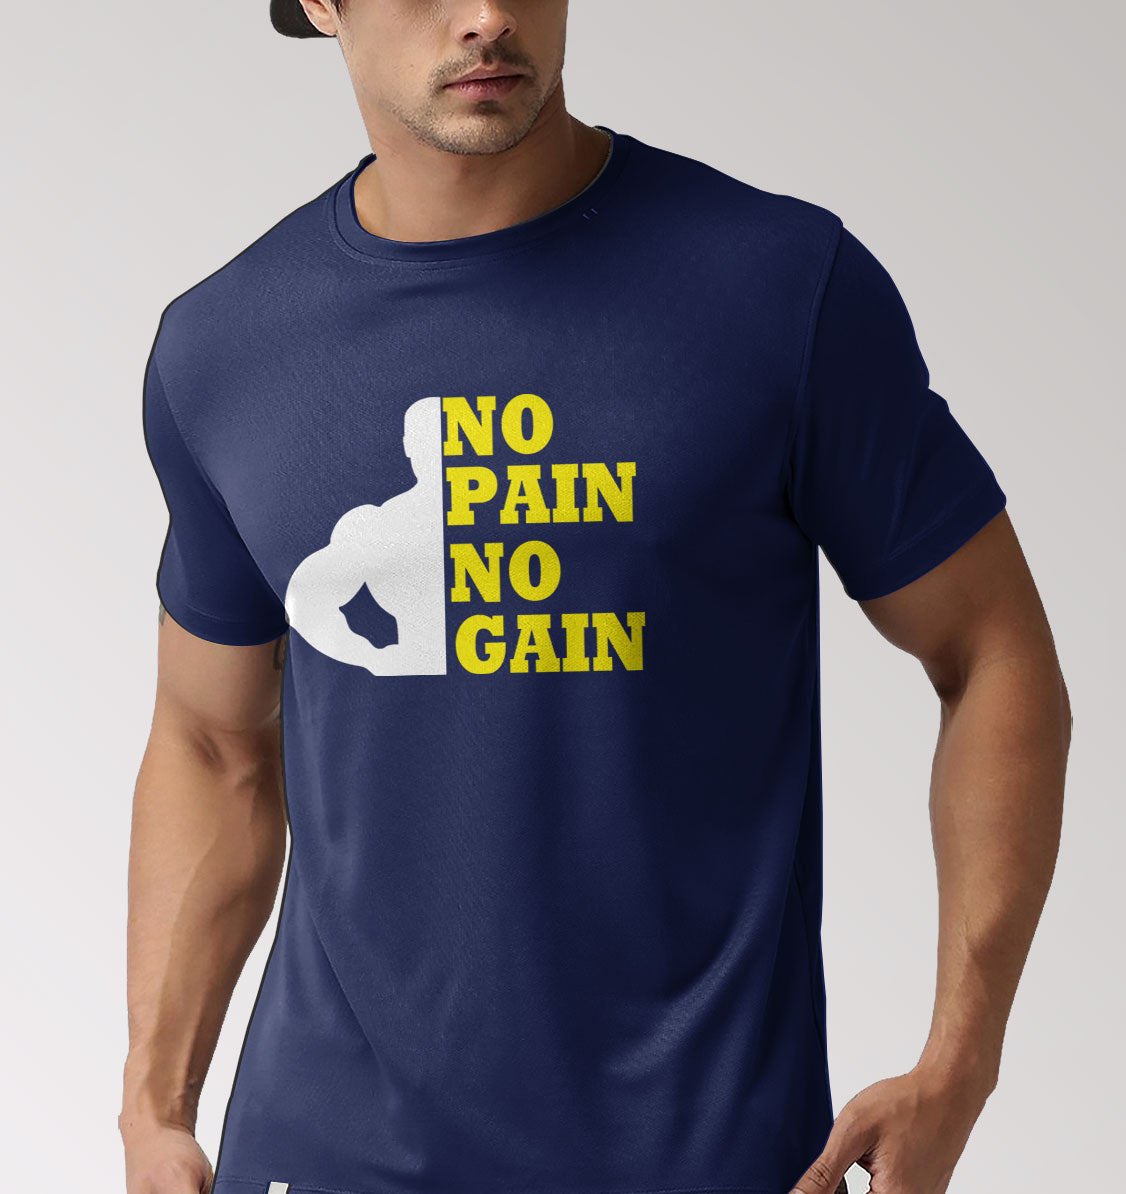 NO PAIN NO GAIN MUSCLES -T-SHIRT